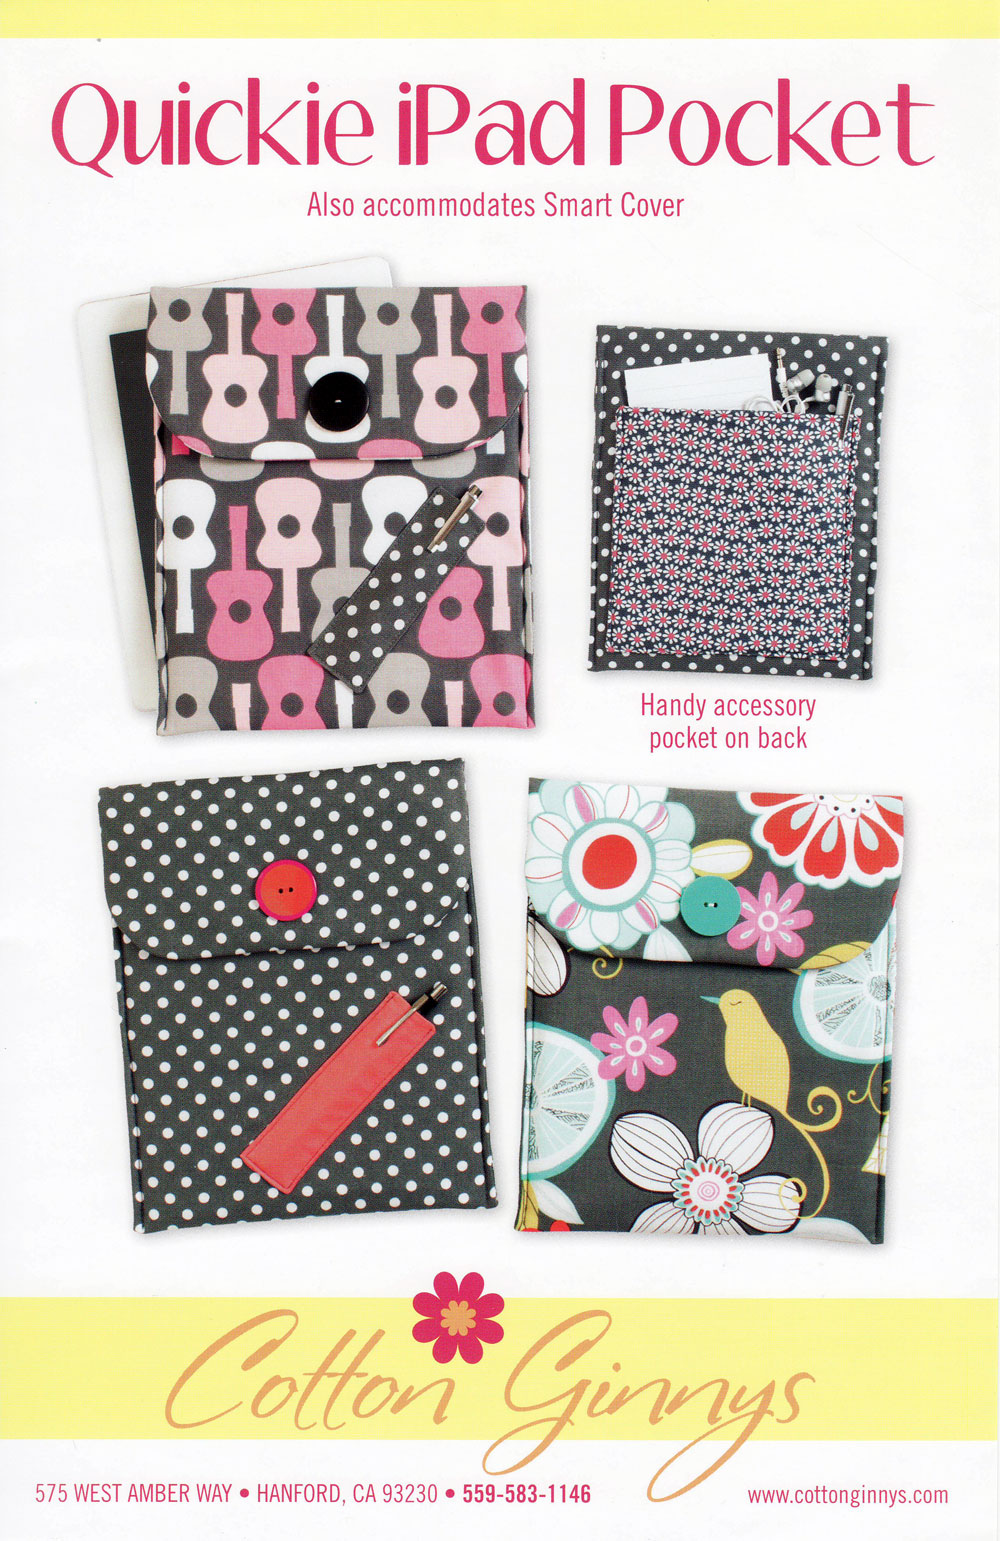 Quickie IPad Pocket sewing pattern from Cotton Ginnys